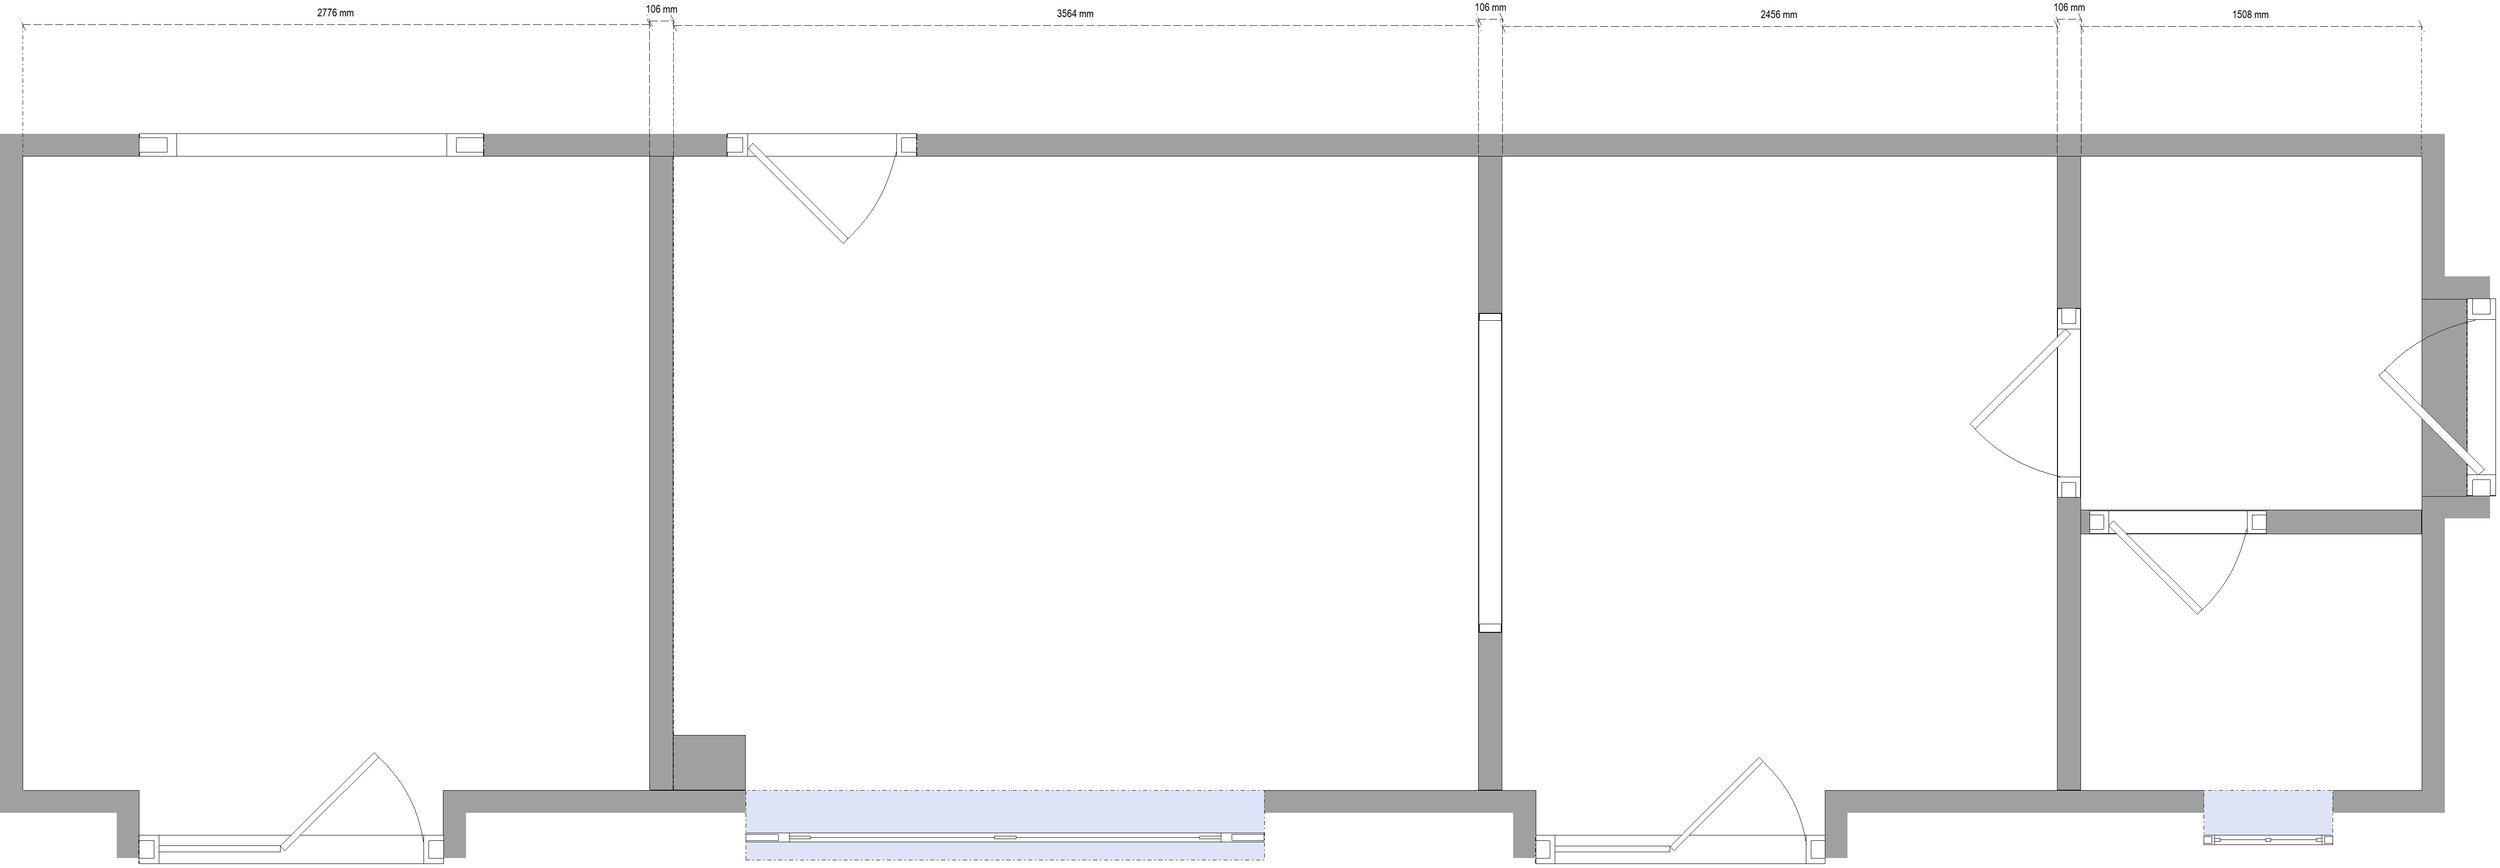 Existing Wall Layout.jpg